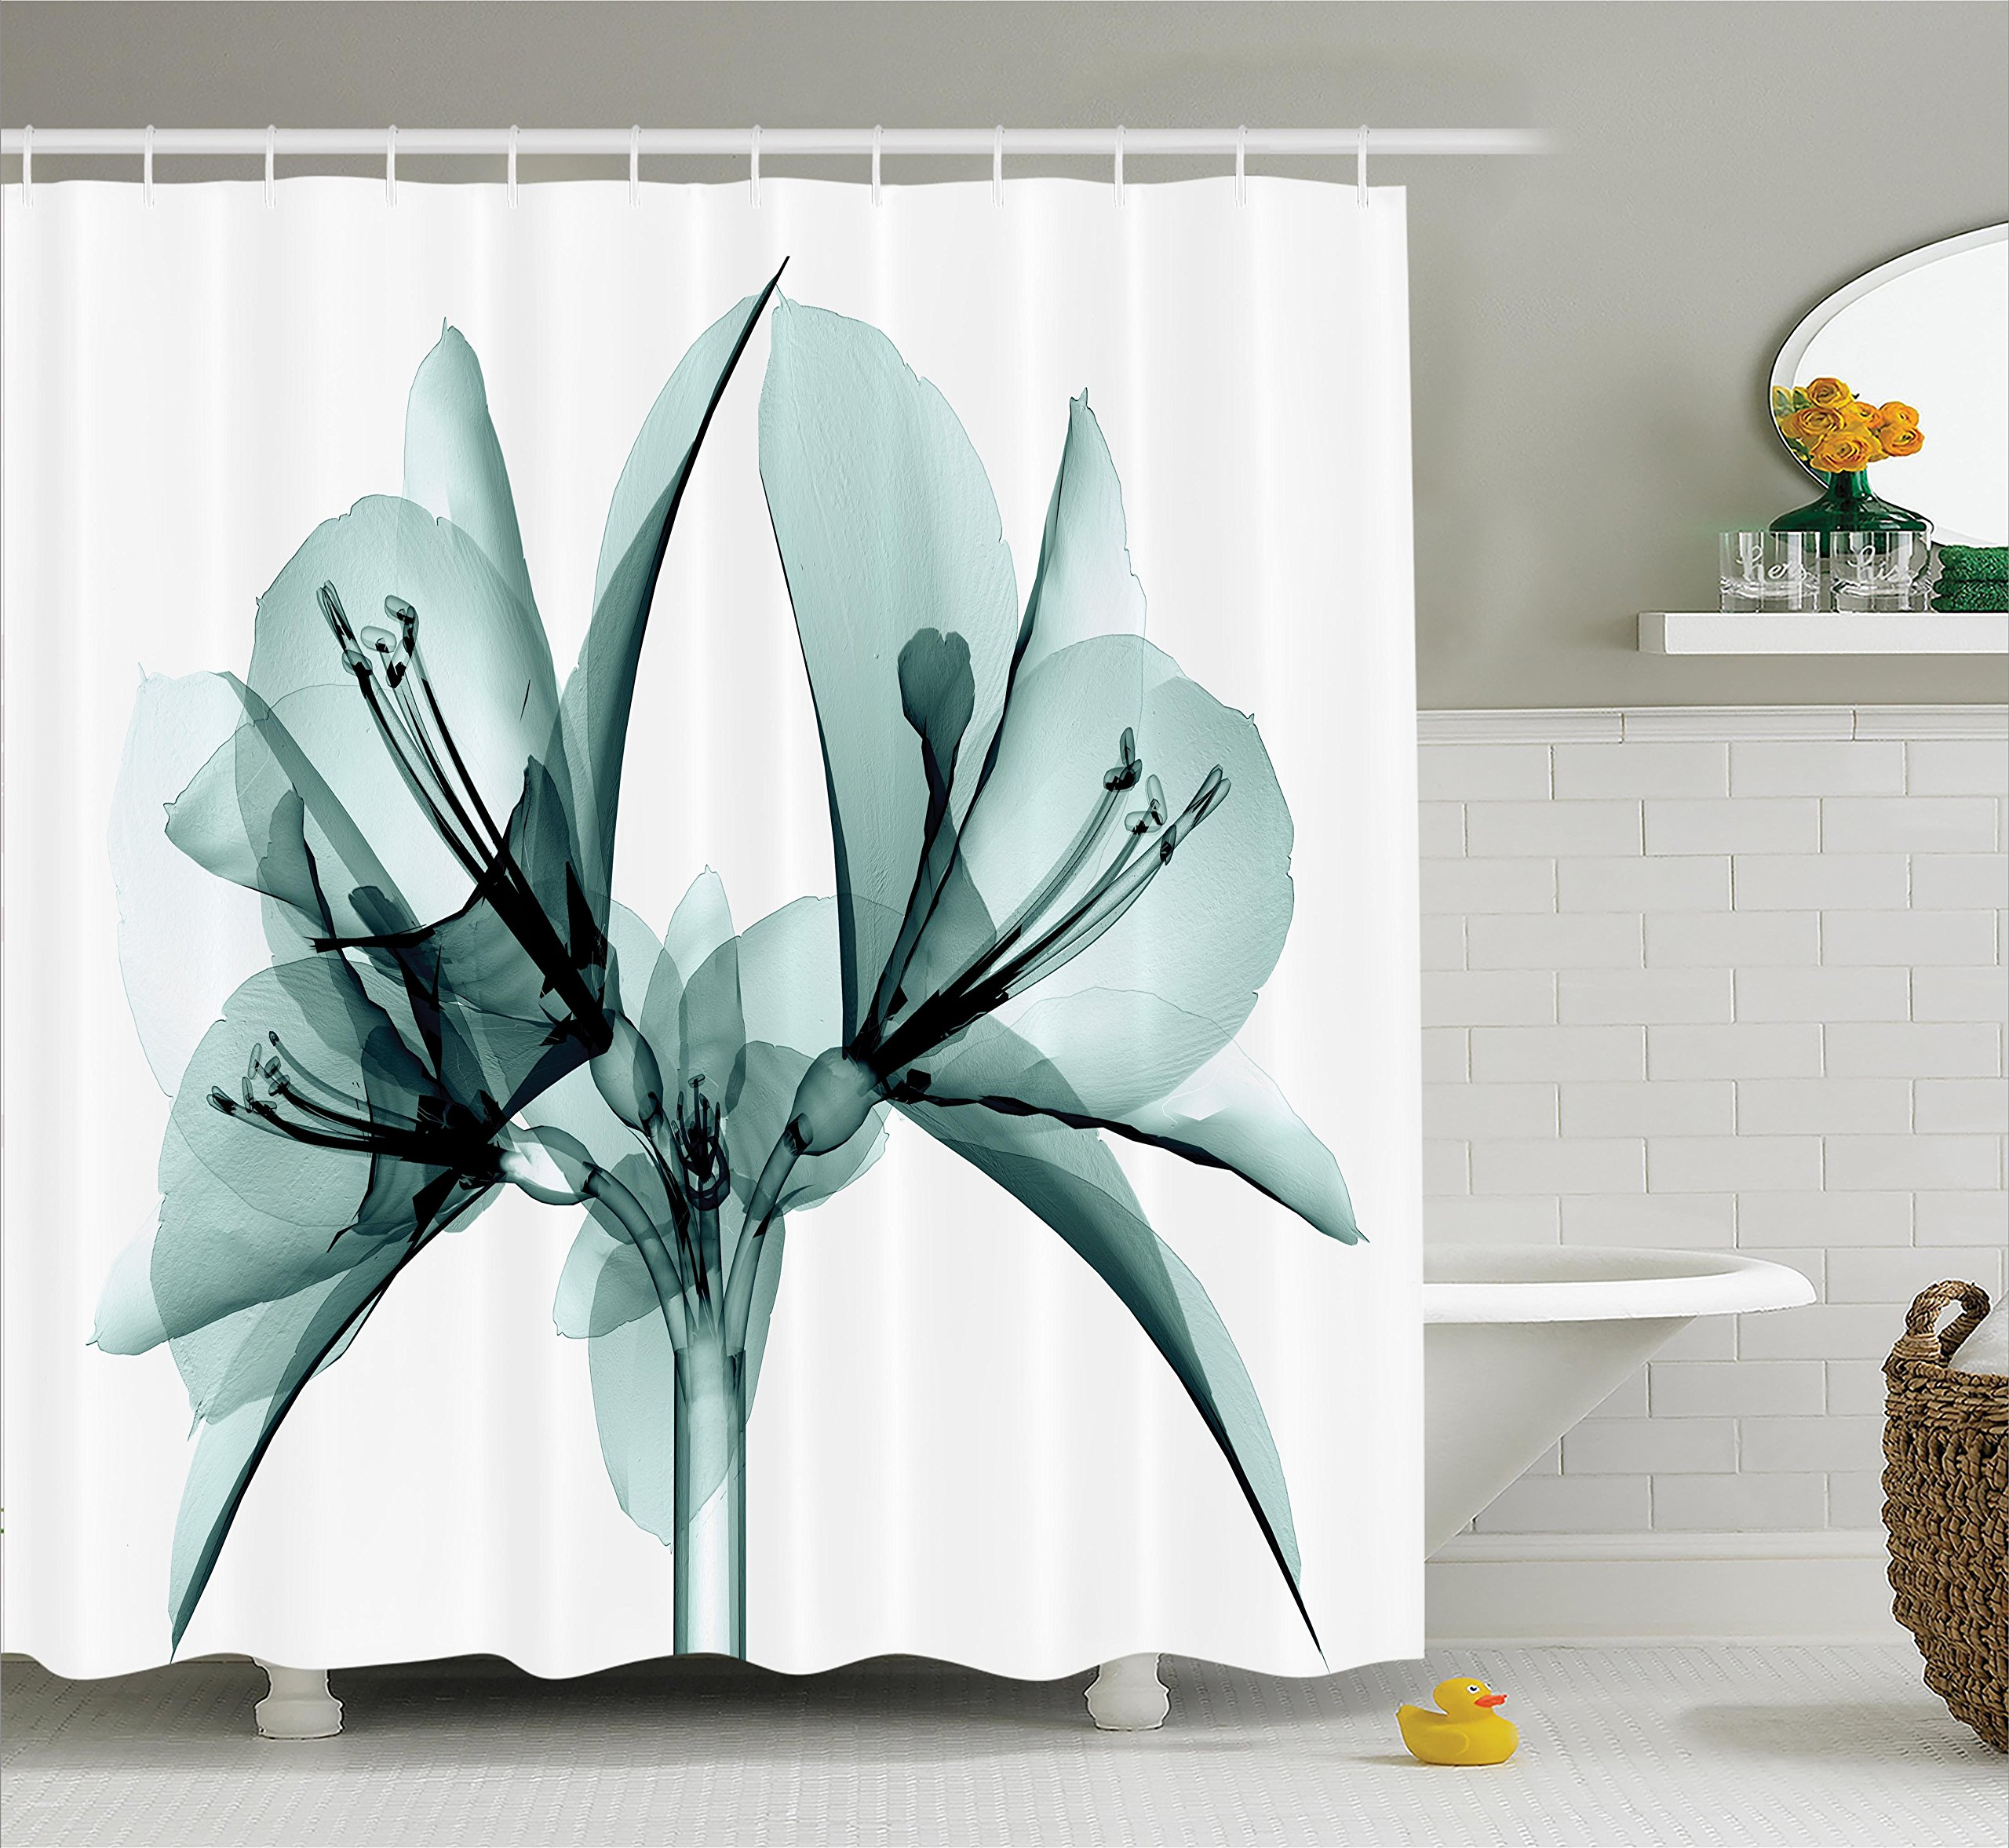 Ambesonne Xray Flower Decor Collection, Illustration of a Blooming Transparent Flower X-ray Vision of Nature Solarized Print, Polyester Fabric Bathroom Shower Curtain, 84 Inches Extra Long, Teal White